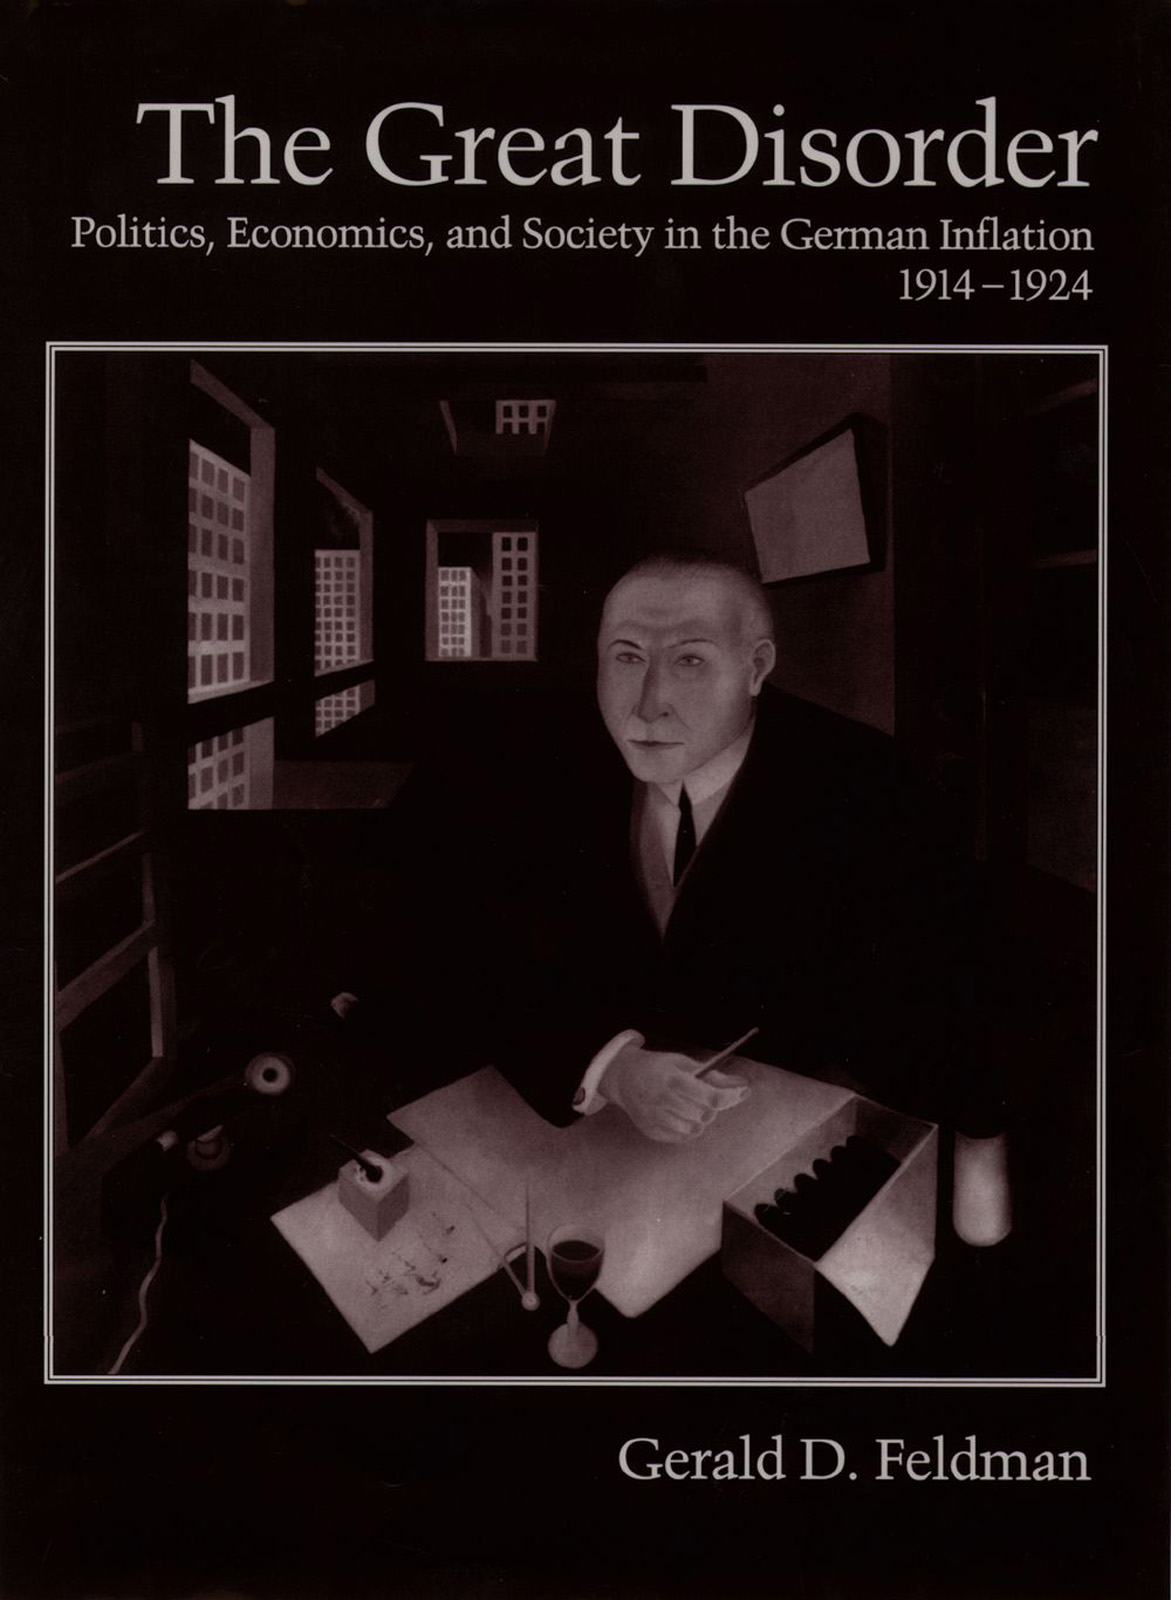 The Great Disorder:Politics, Economics, and Society in the German Inflation, 1914-1924